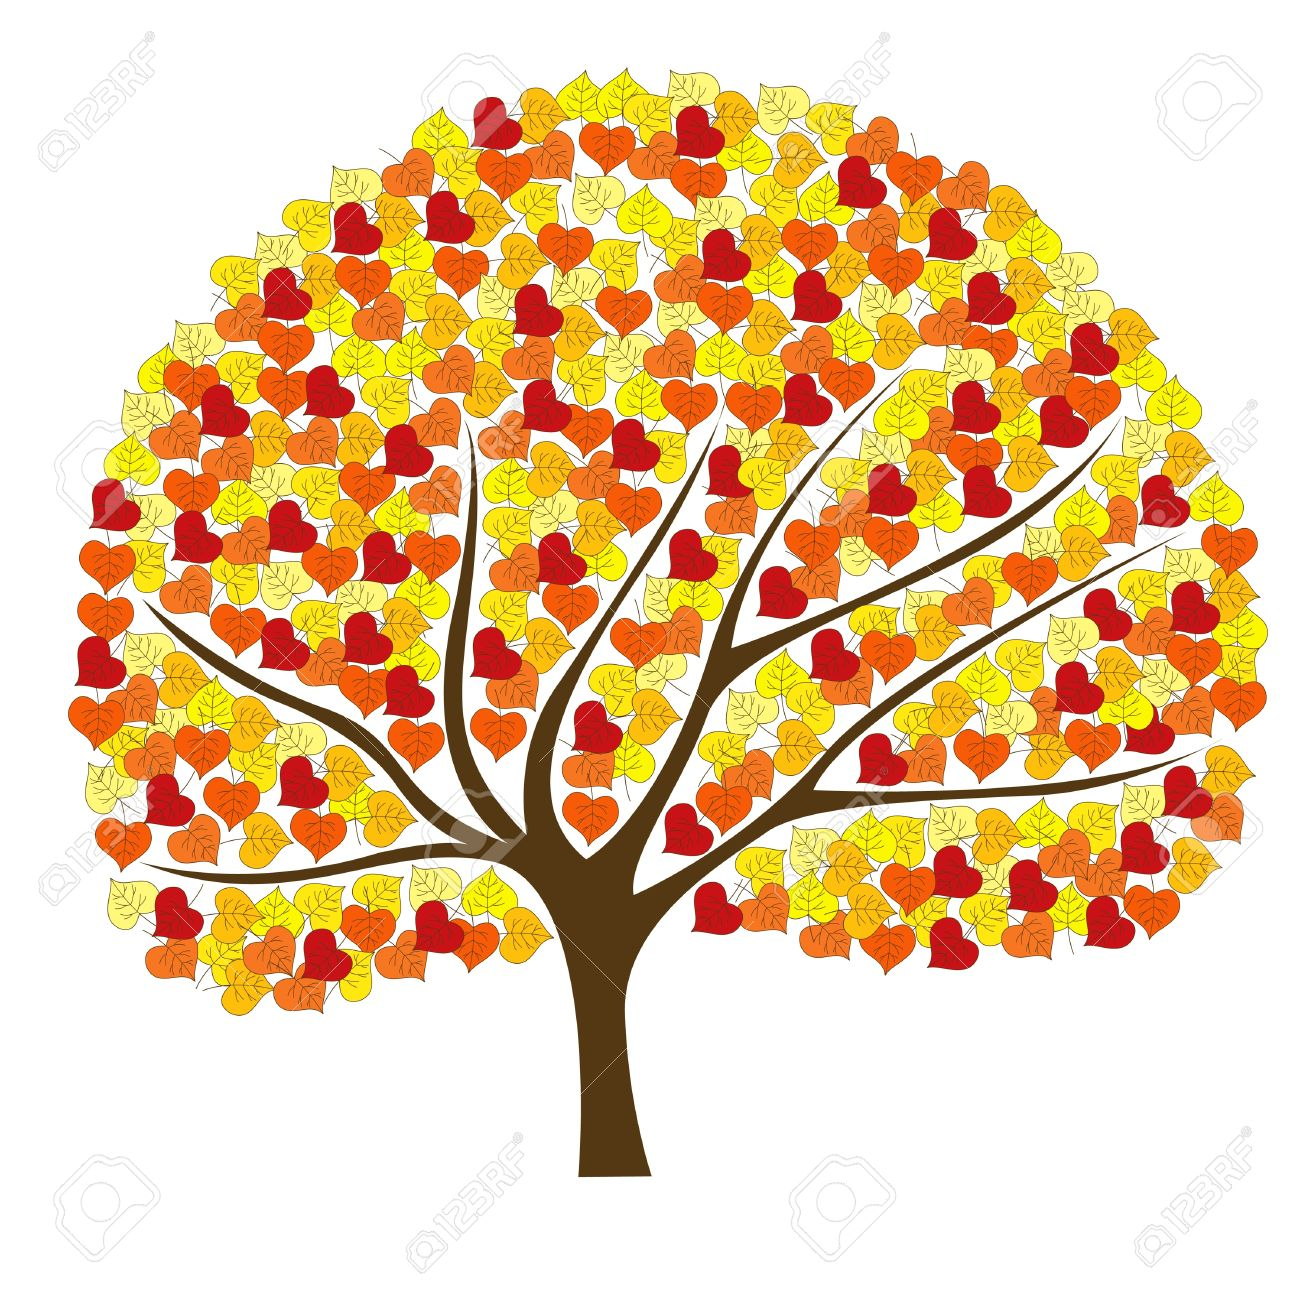 Cute Fall Tree Clipart Cute Fall Tree Cl-Cute Fall Tree Clipart Cute Fall Tree Clipart-3